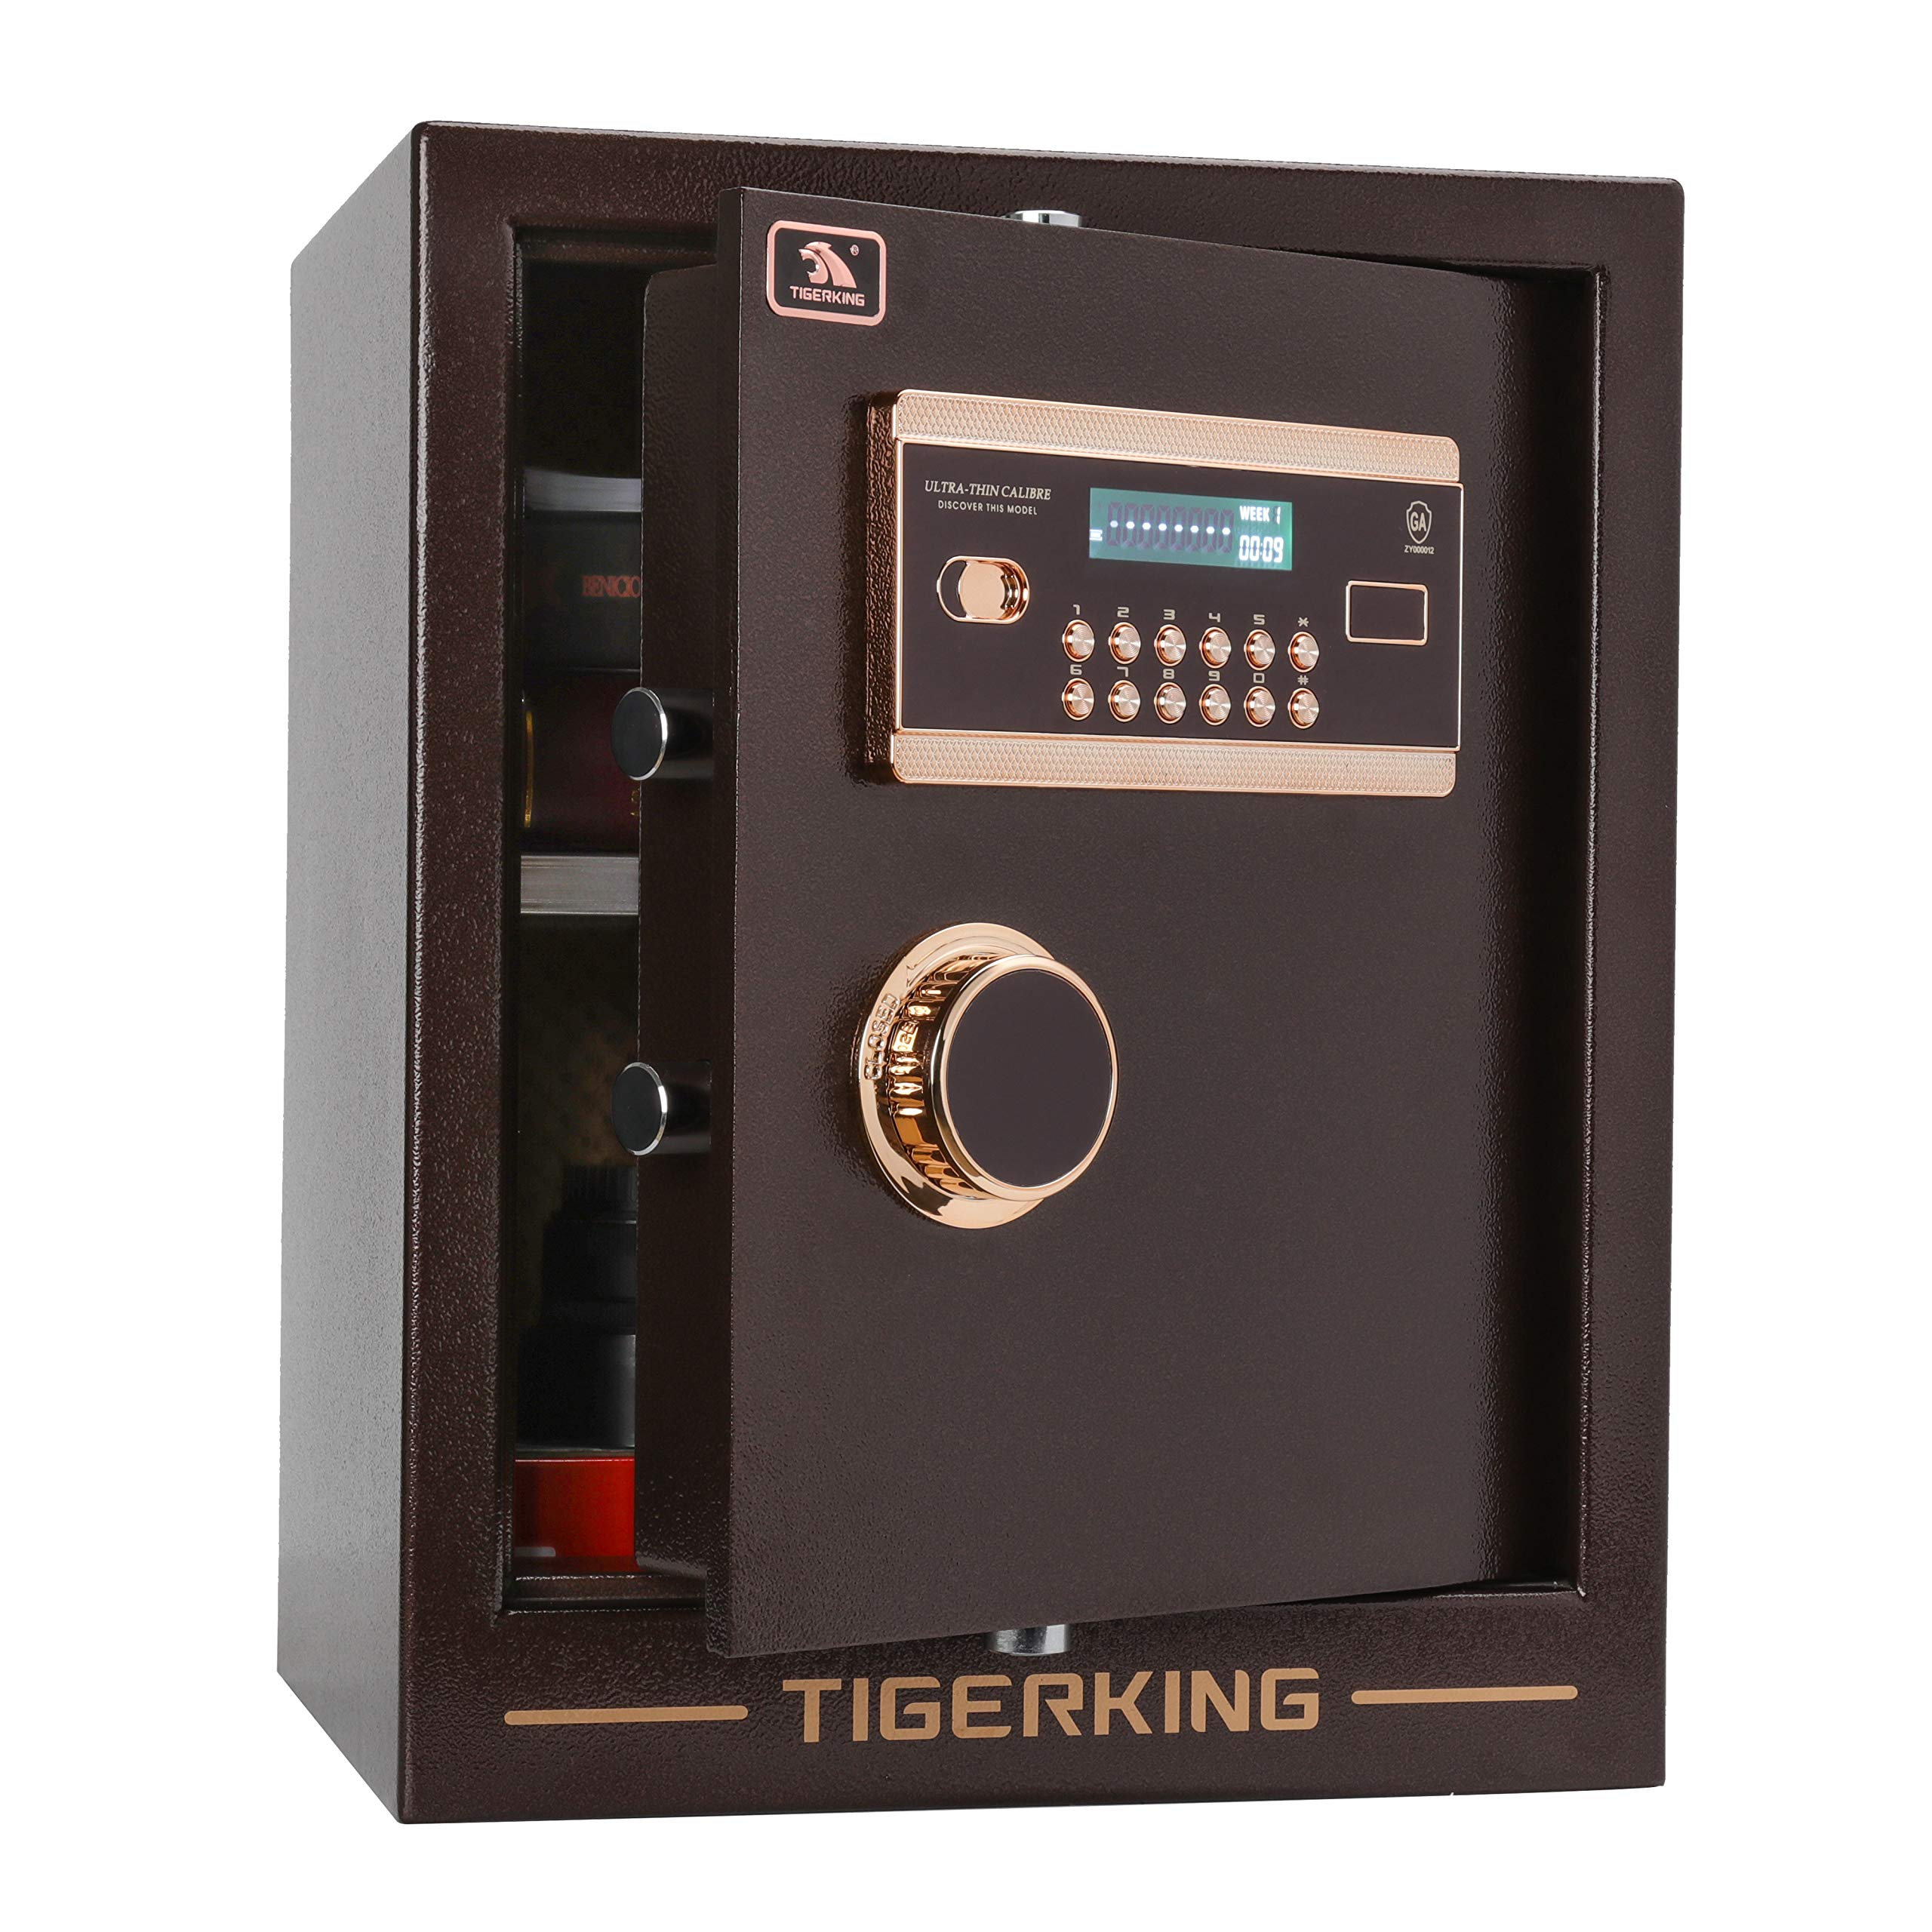 Digital Security Safe Box Solid Alloy Steel Construction with 4 Live-Locking Bolts Password Plus Key Setting for Home Office Hotel 1. 34 Cubic Feet By TigerKing